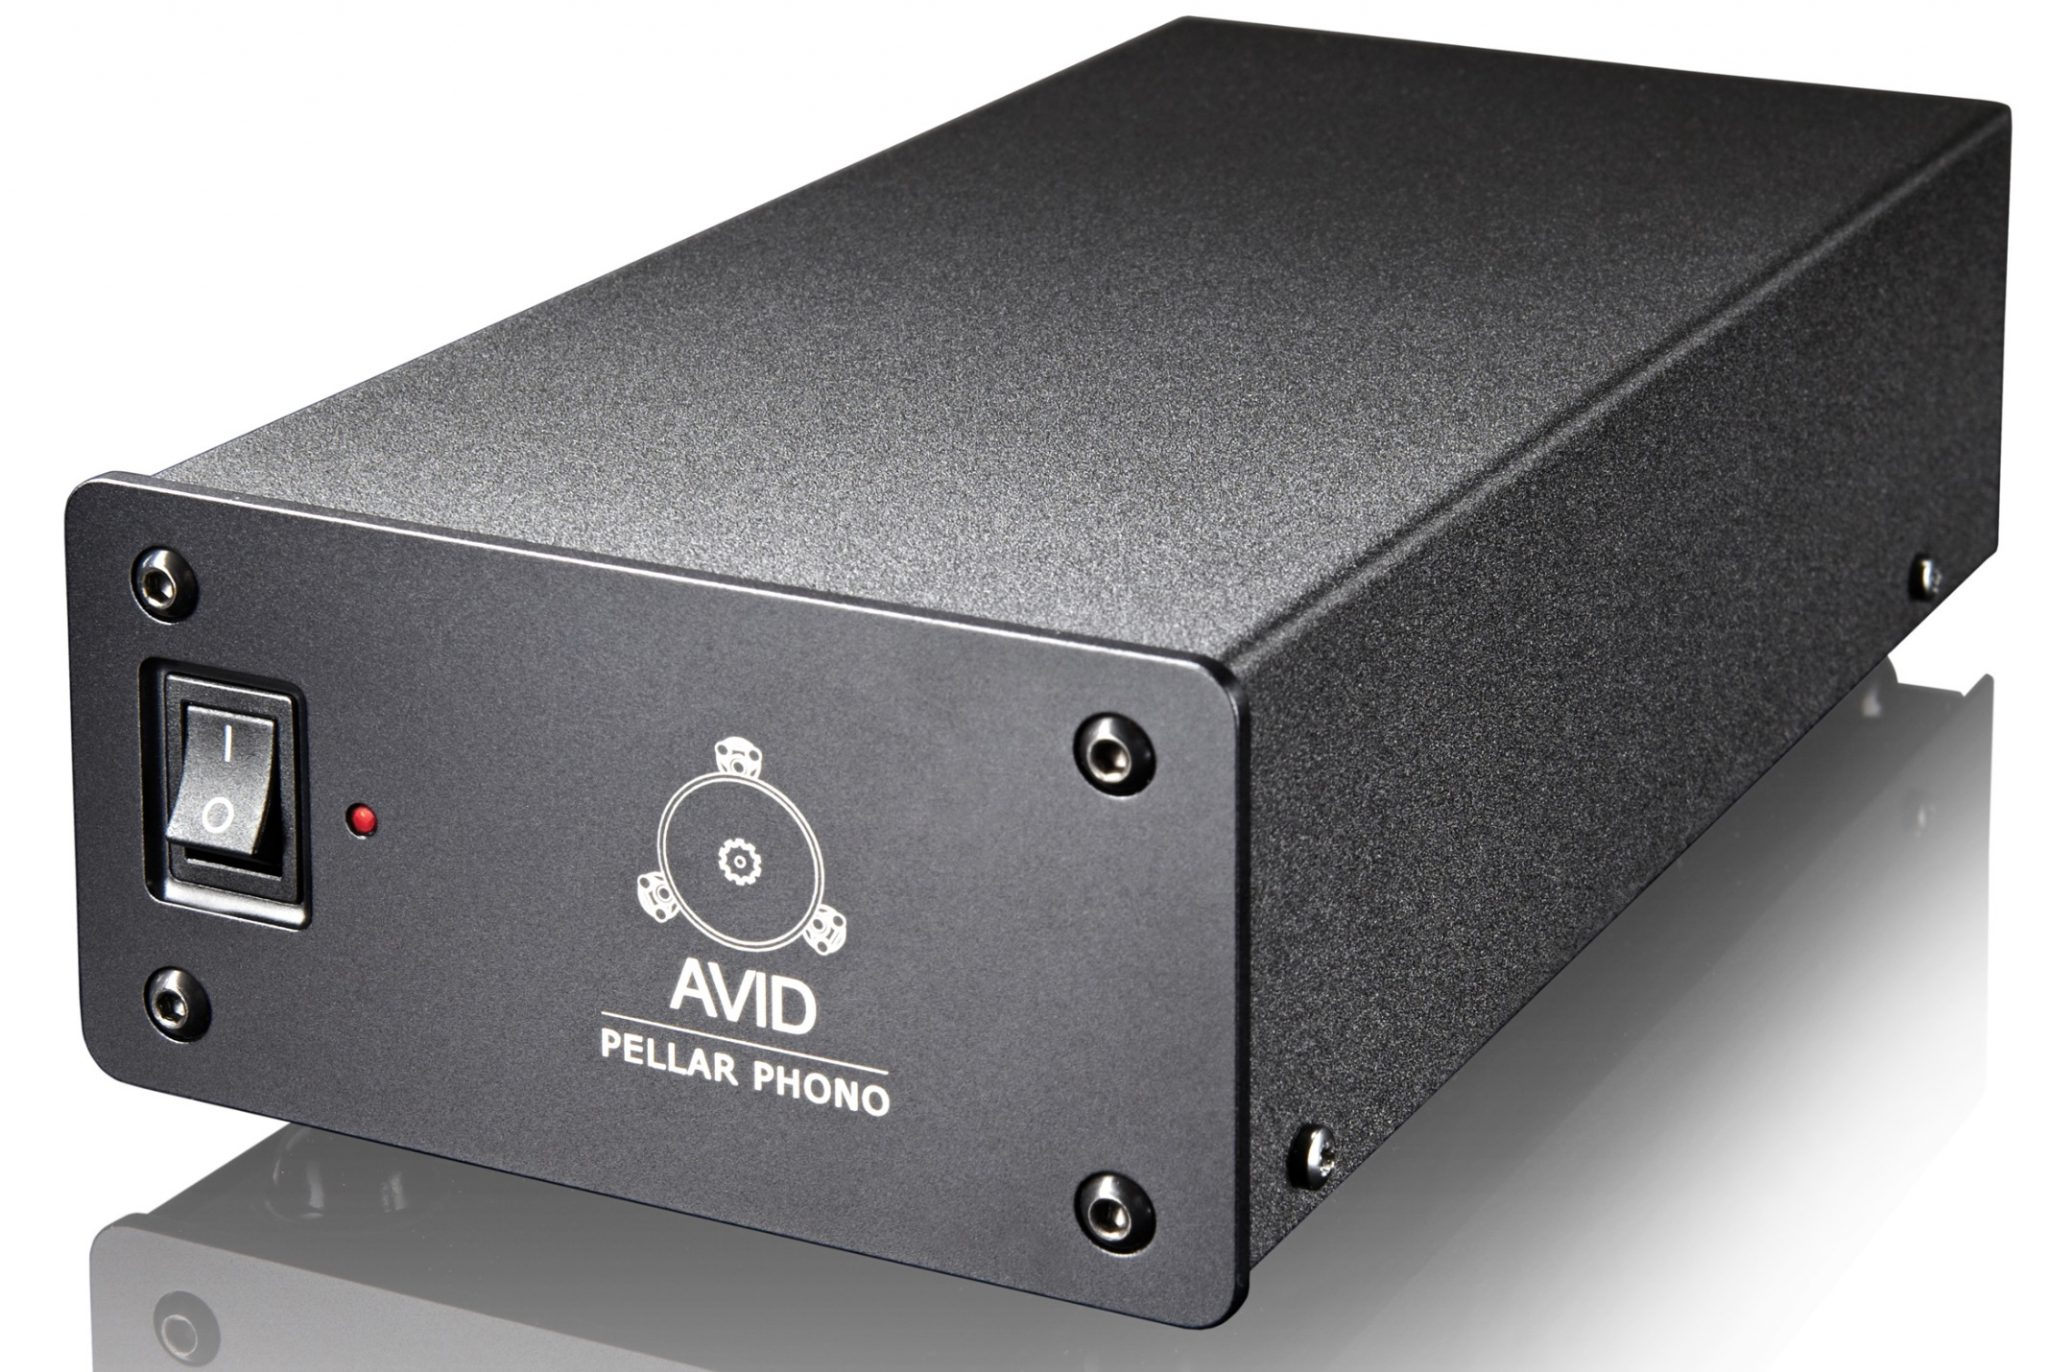 Pellar from AVID HiFi: A Low Cost Phono Amplifier